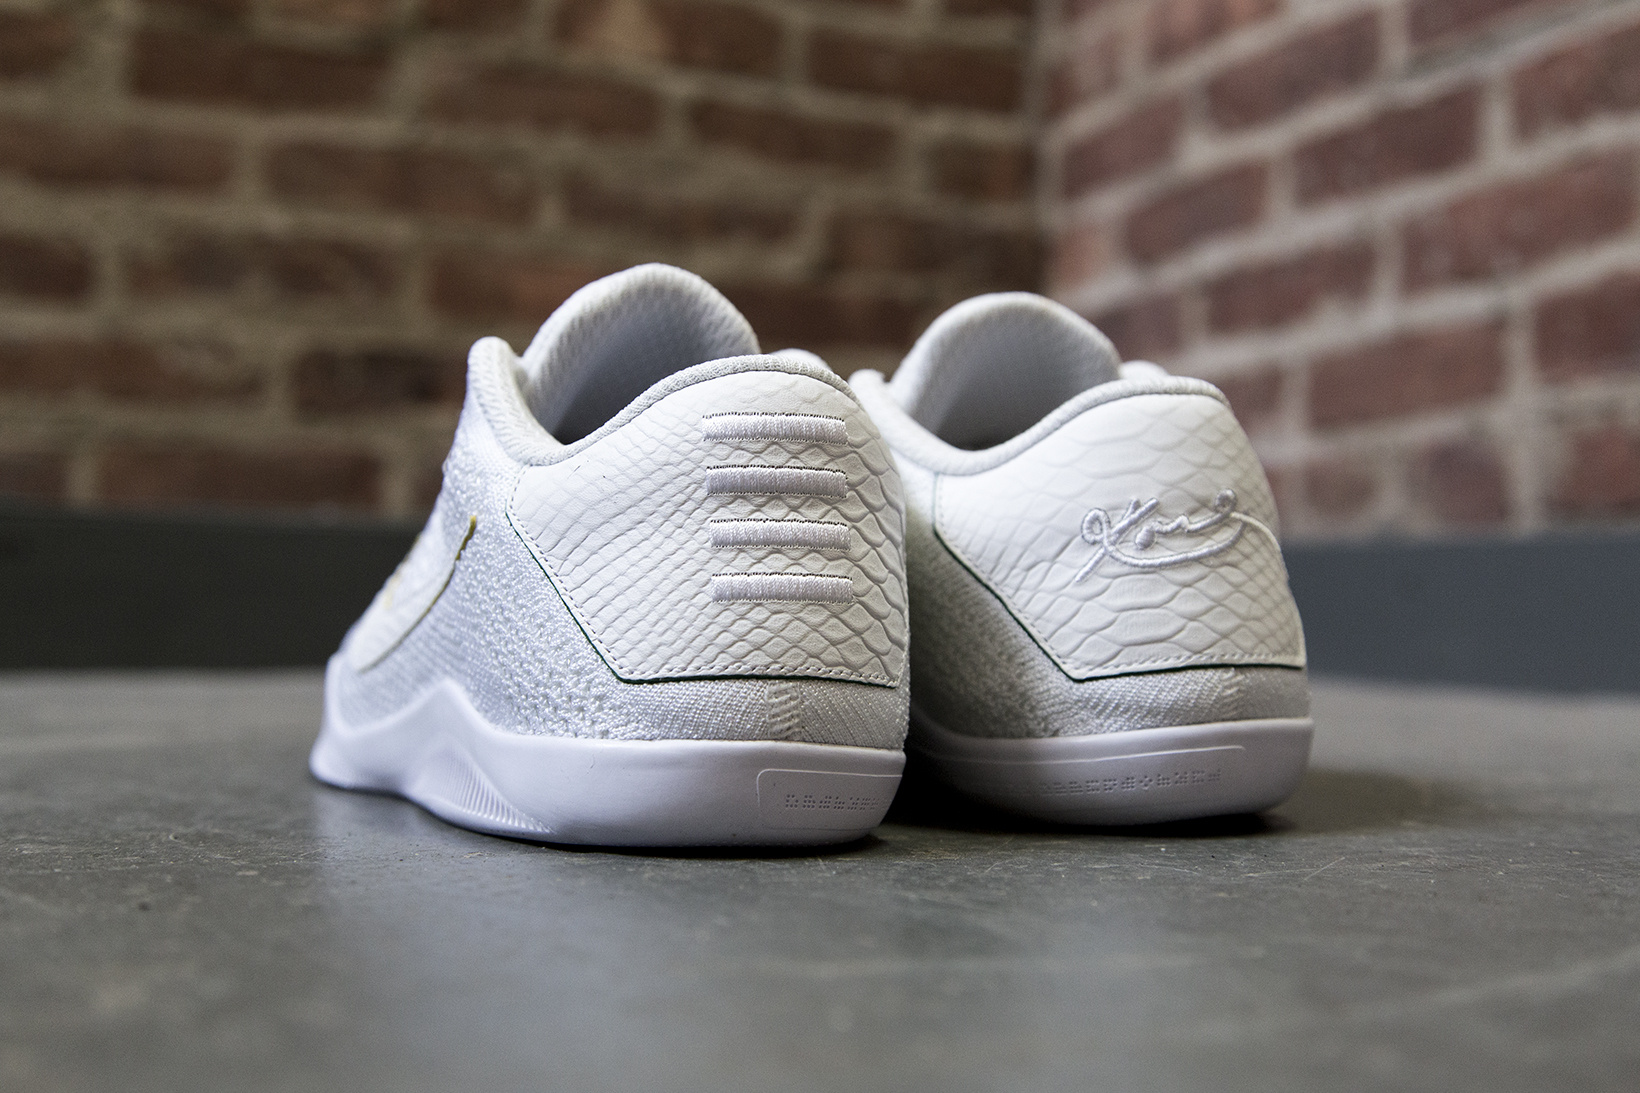 nikelab-kobe-xi-elite-low-brazil-04